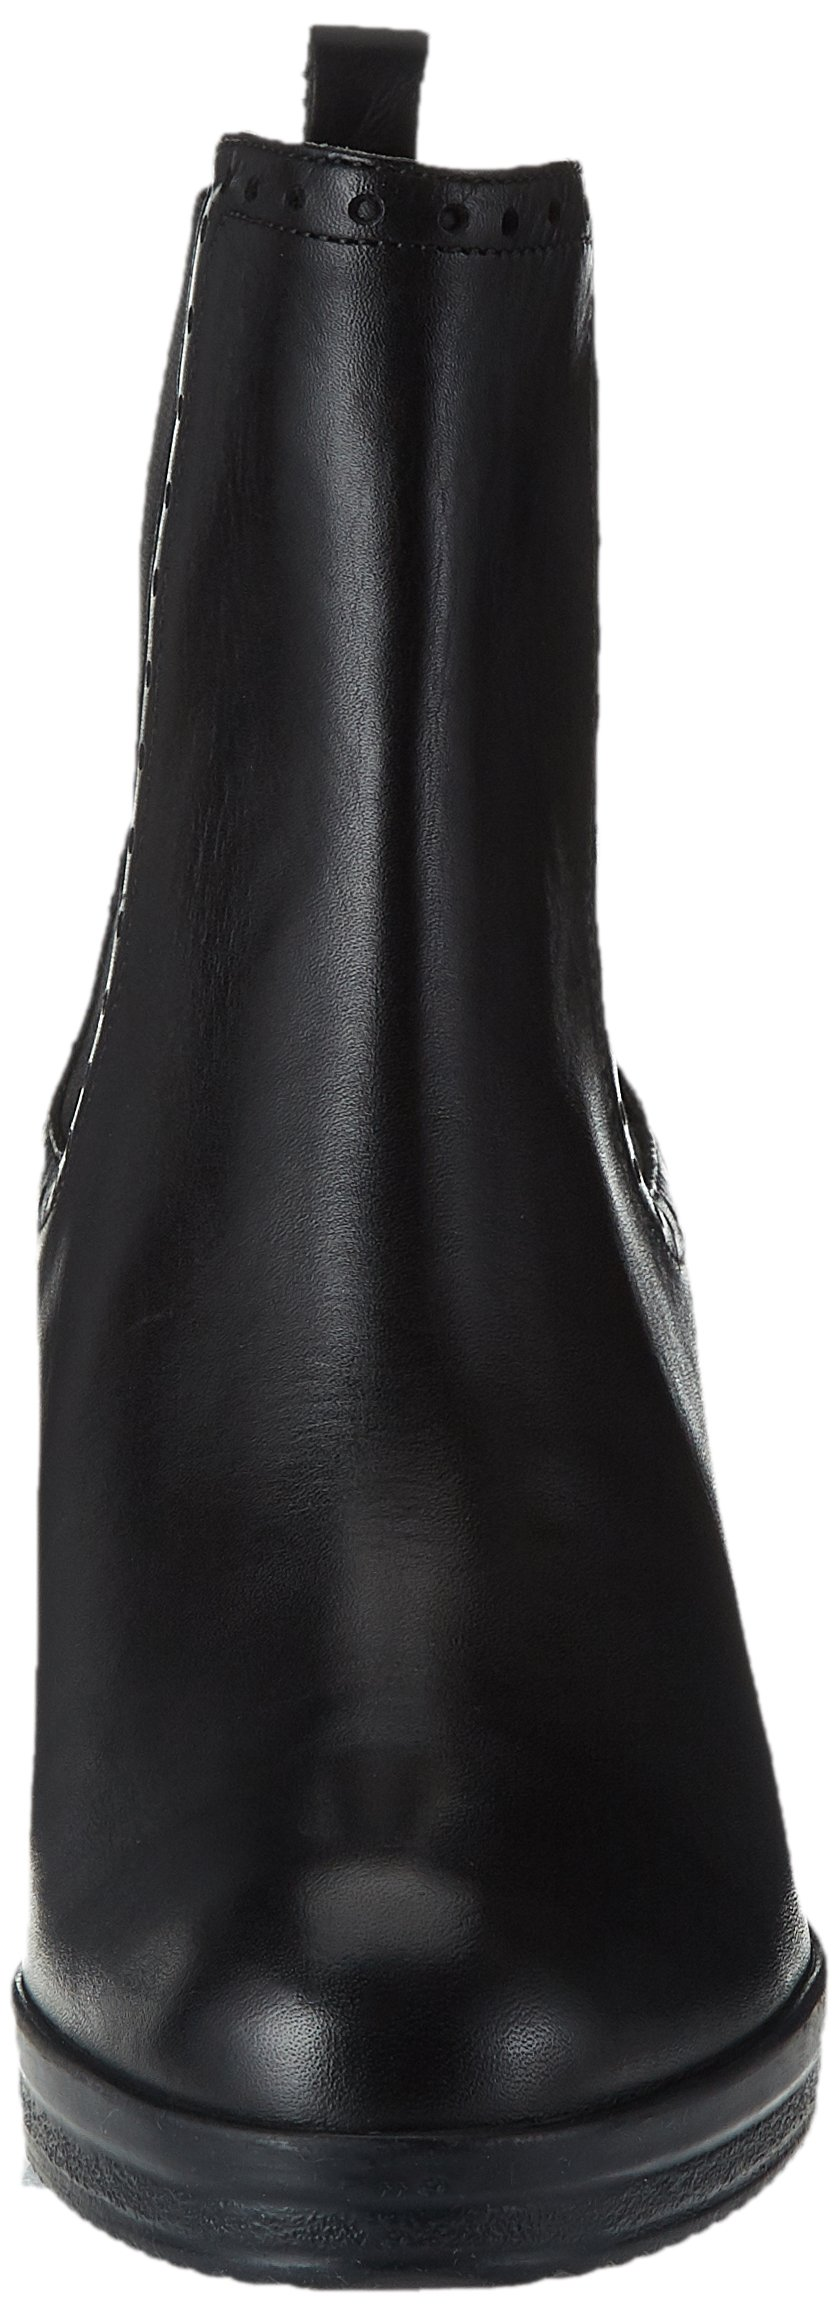 Geox D Remigia F, Botines Mujer